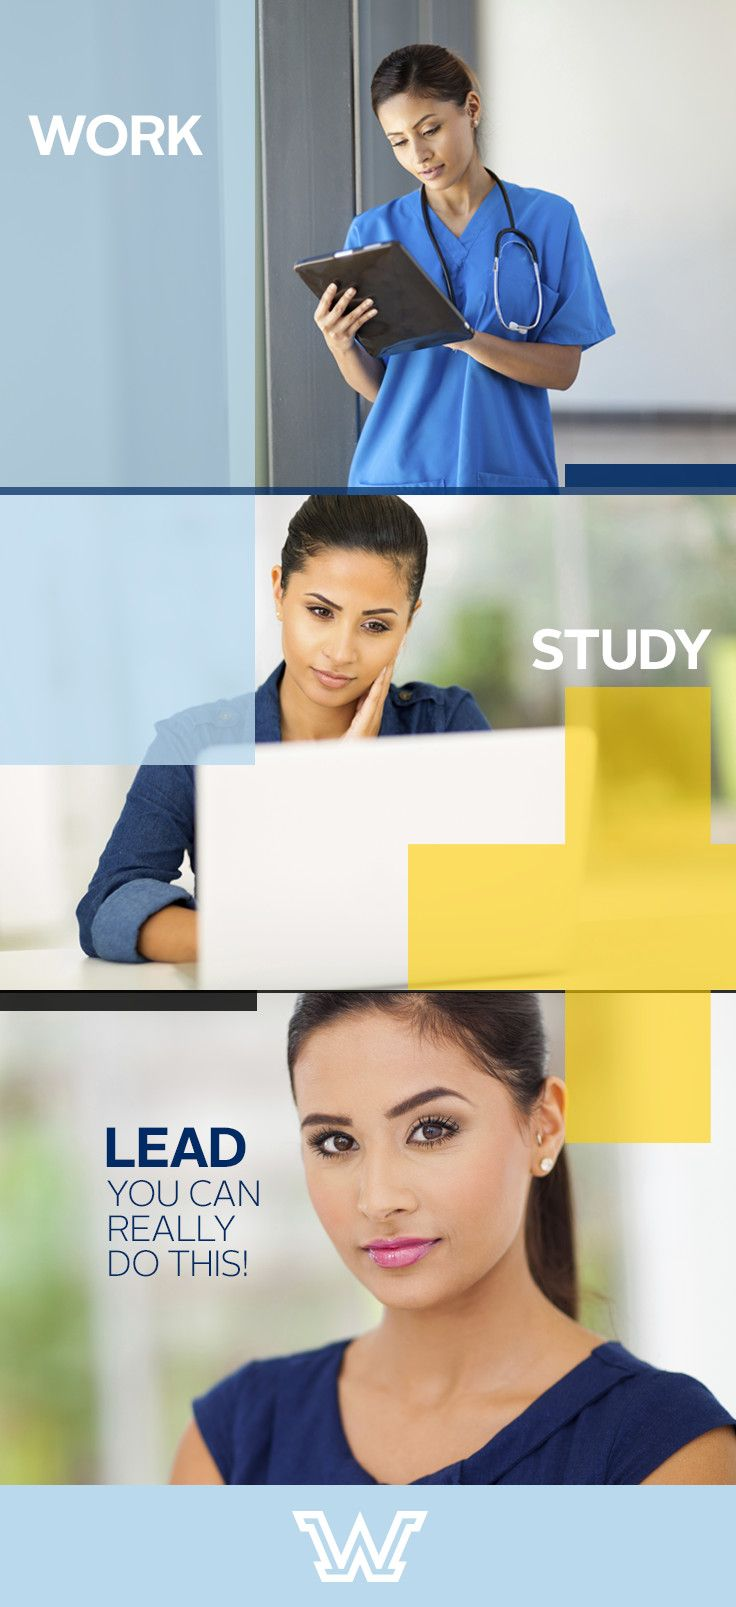 Become a nursing leader! Invest in your education and earn your advanced nursing degree completely online. Apply with Wilkes University today!